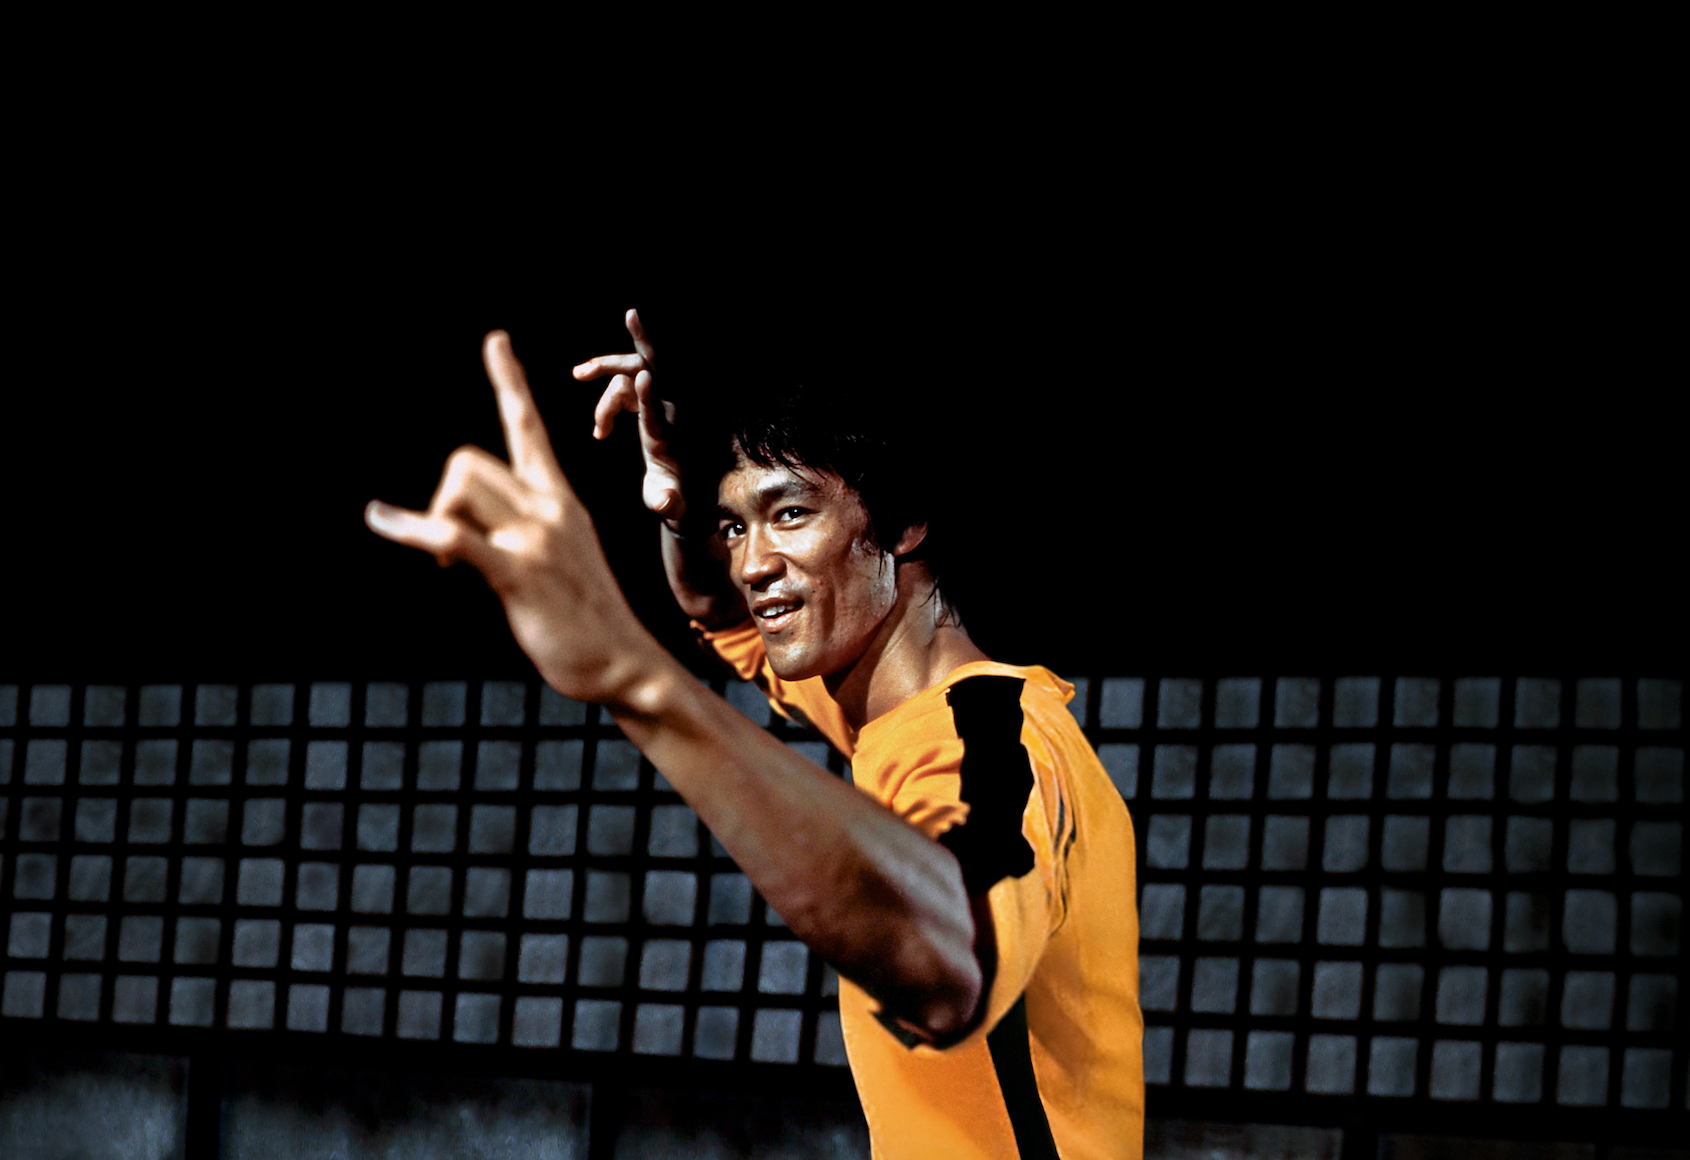 hublot-big-band-be-water-bruce-lee5